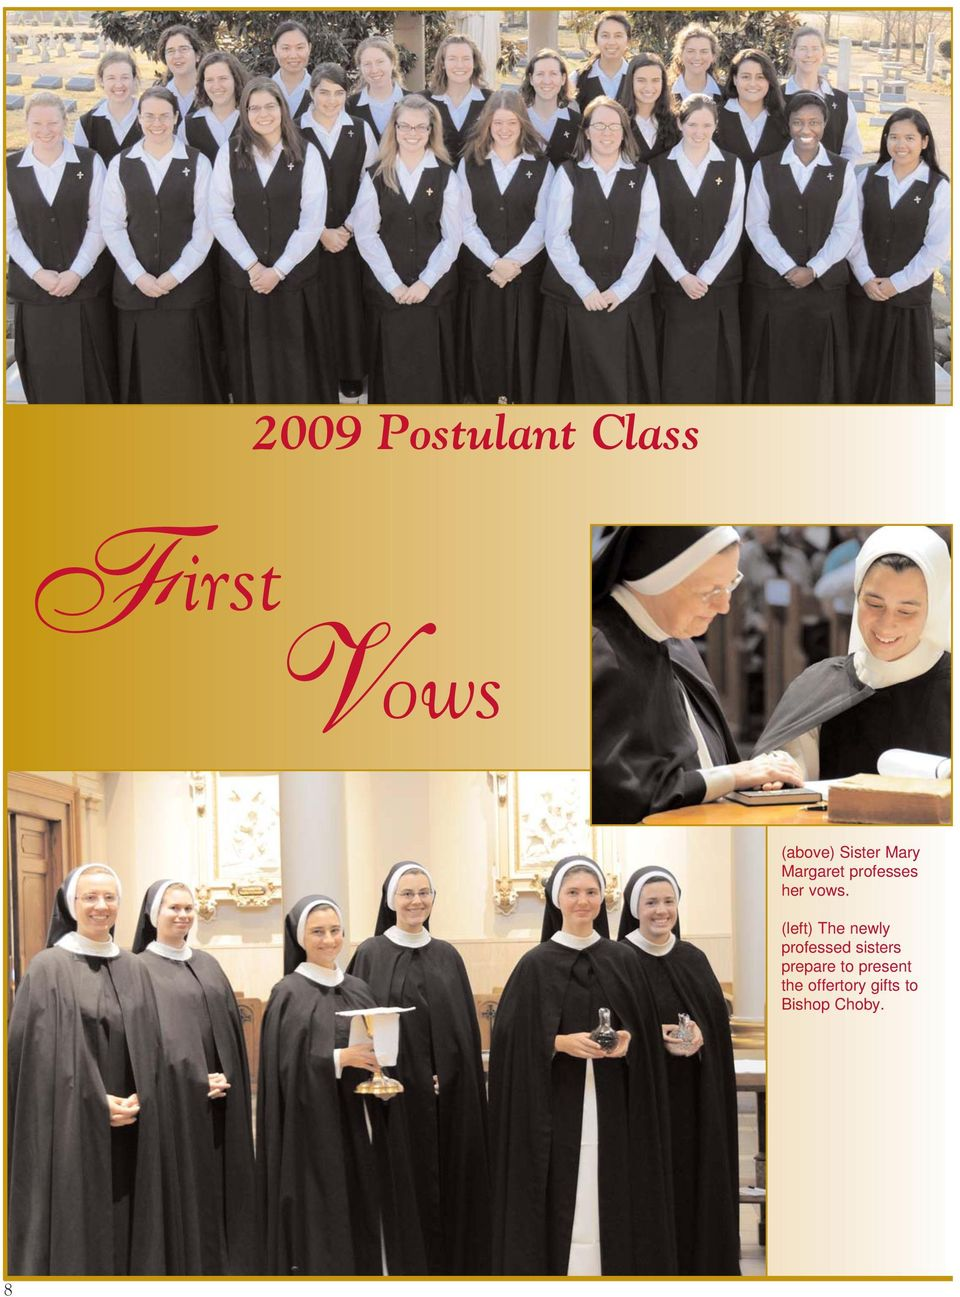 (left) The newly professed sisters prepare